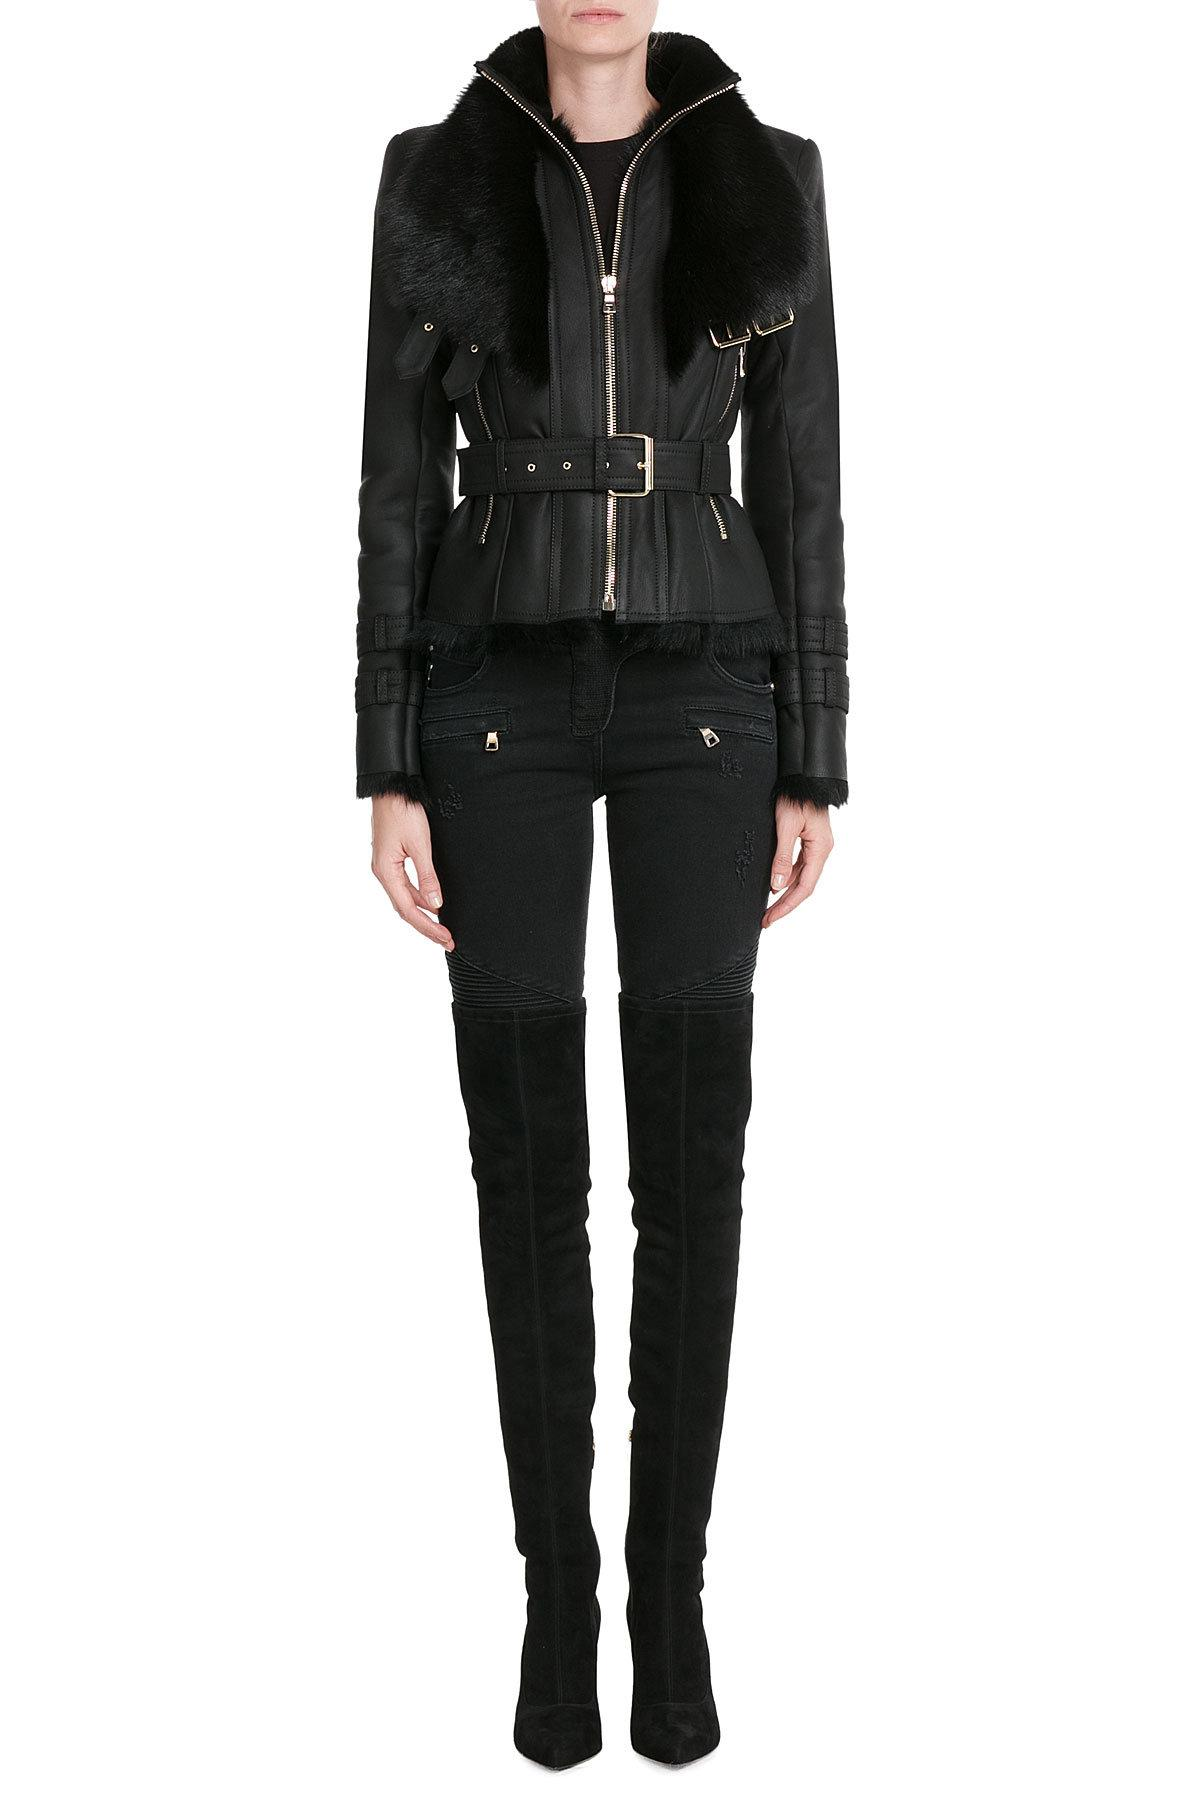 Balmain leather jacket women